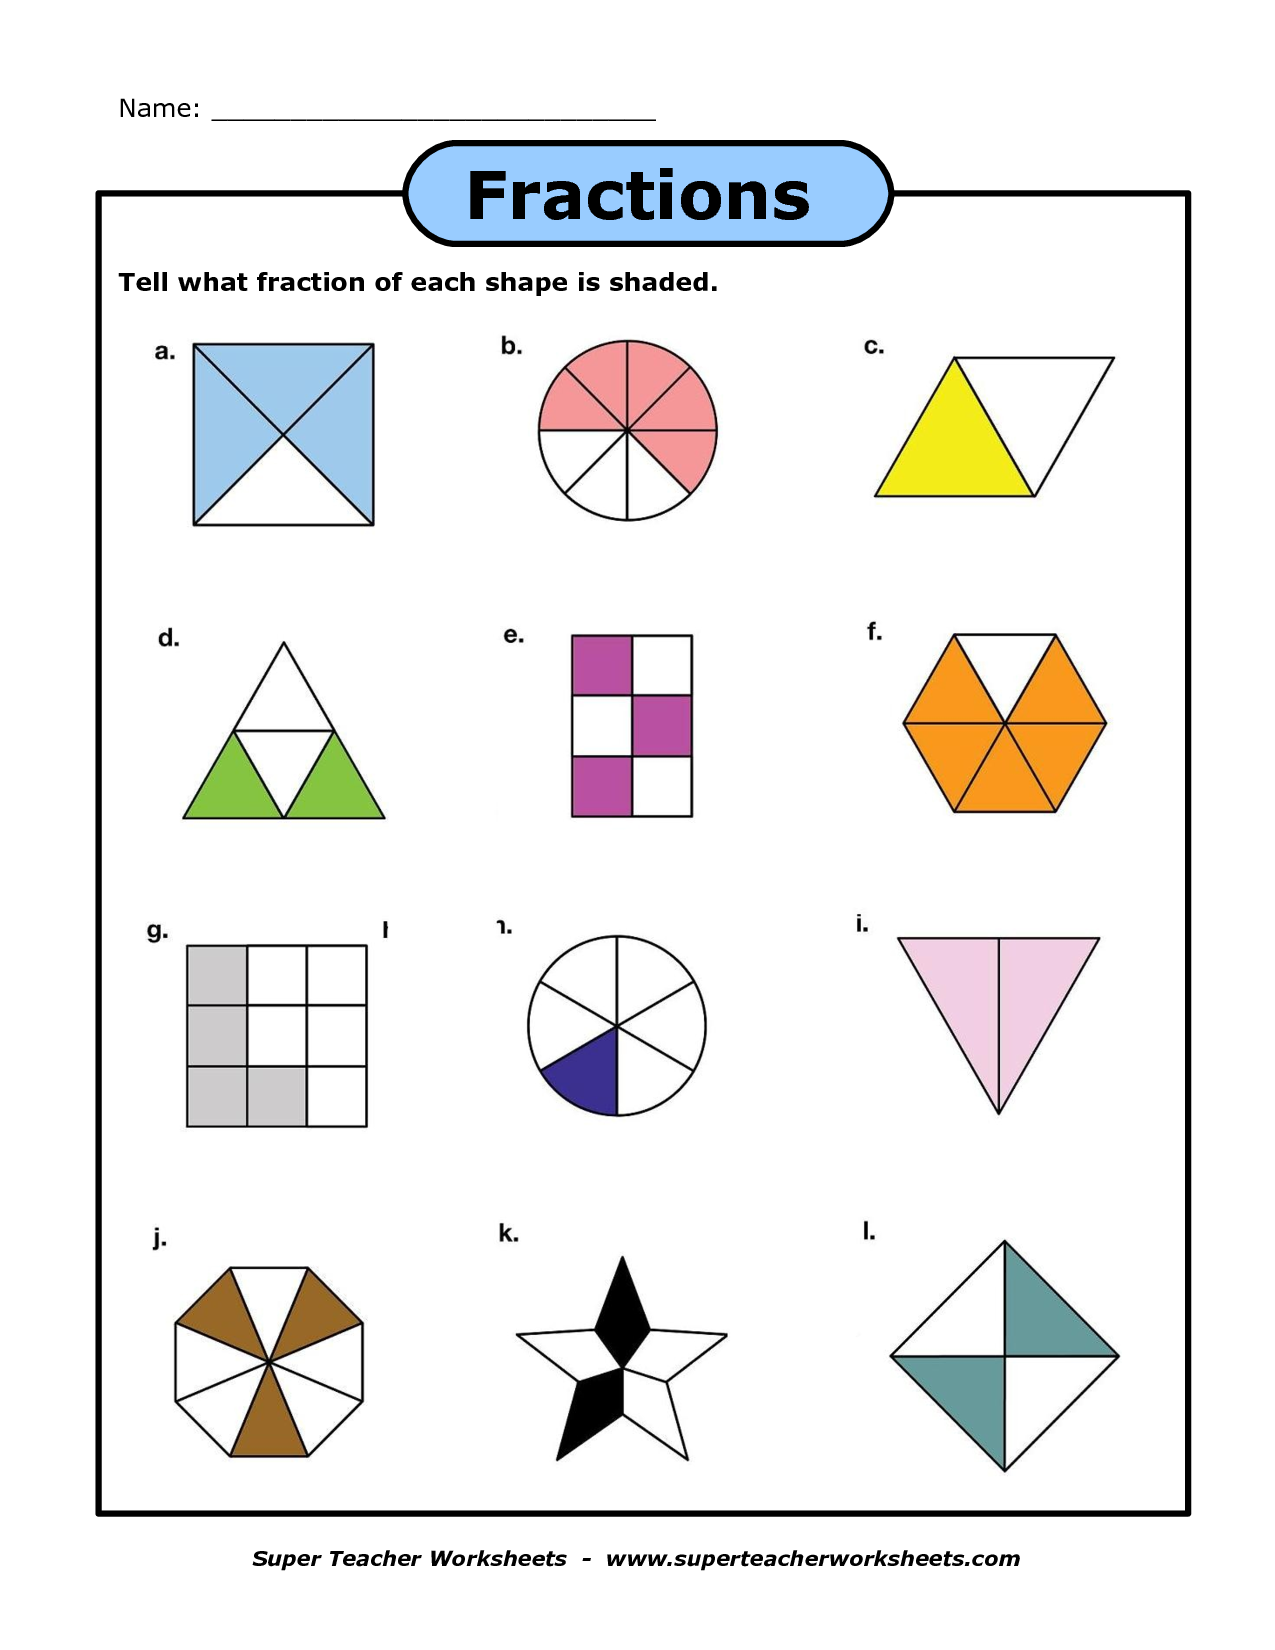 worksheet Superteacher Worksheets a fraction worksheet ivyanna andson pinterest worksheets worksheet